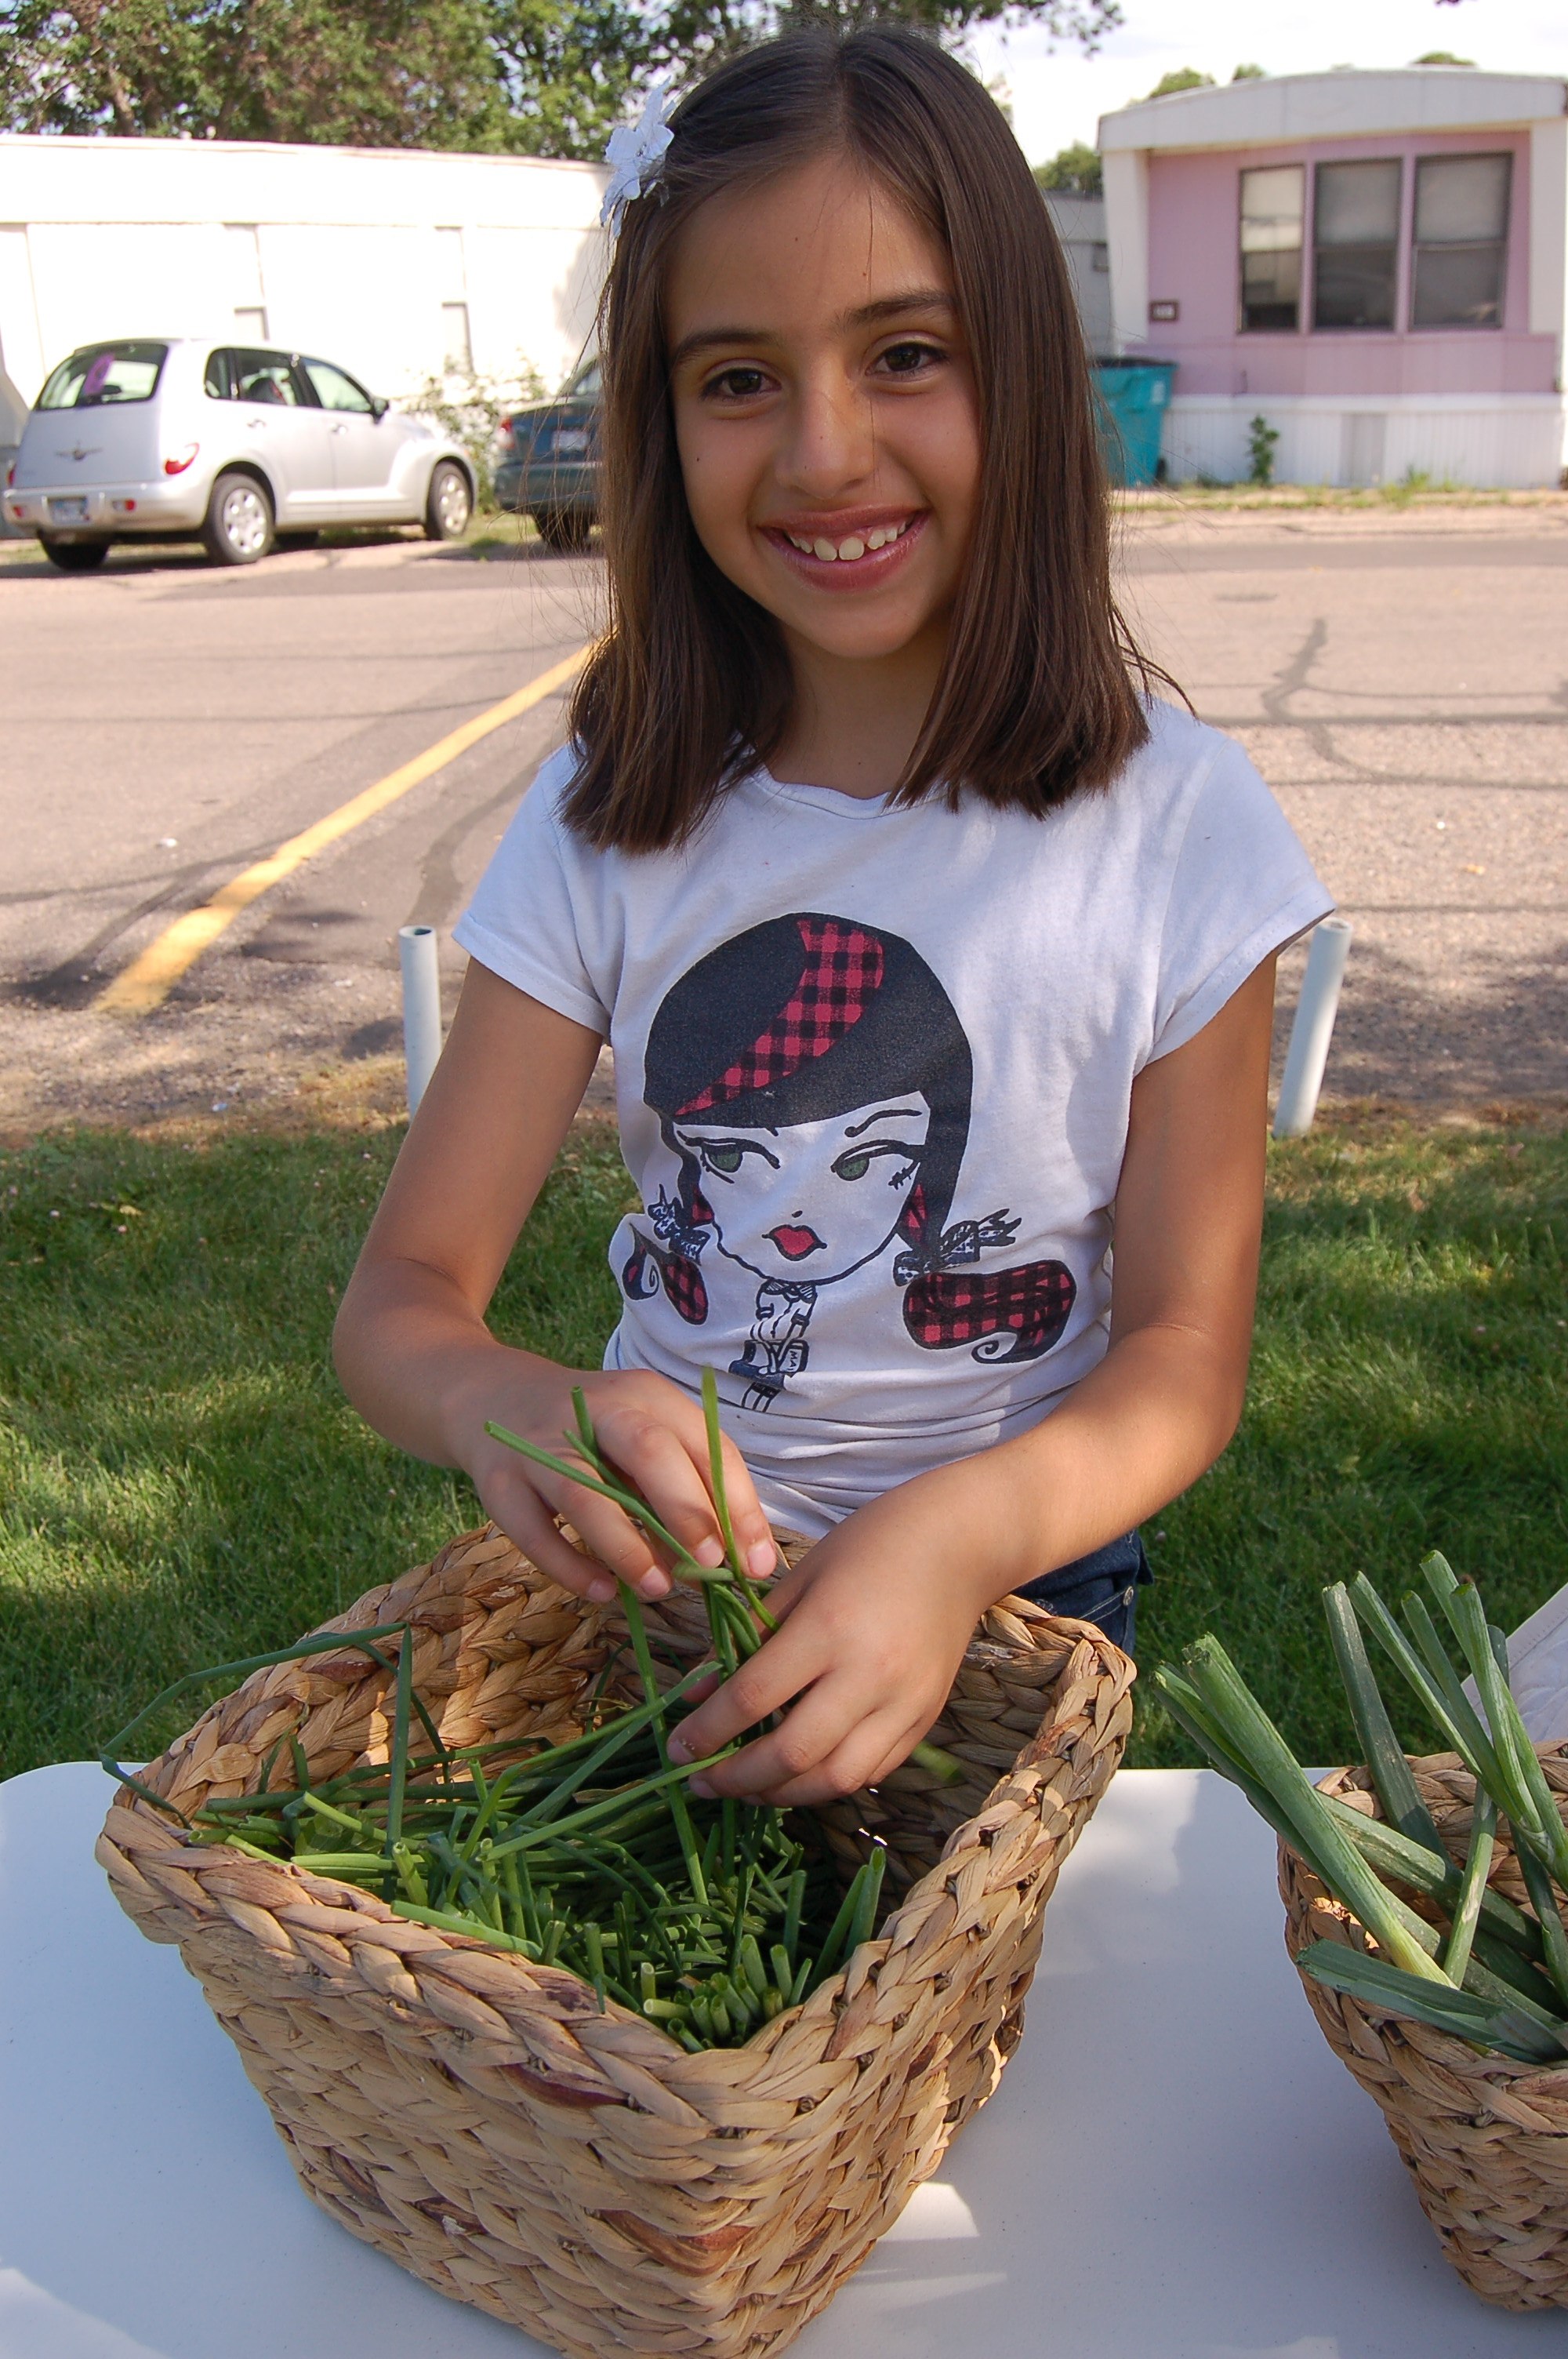 Each week, our youth give away local produce to families living in food deserts. Many of the kids are from the neighborhood, so it's a chance for them to reach out to their neighbors and families and show off their hard work.